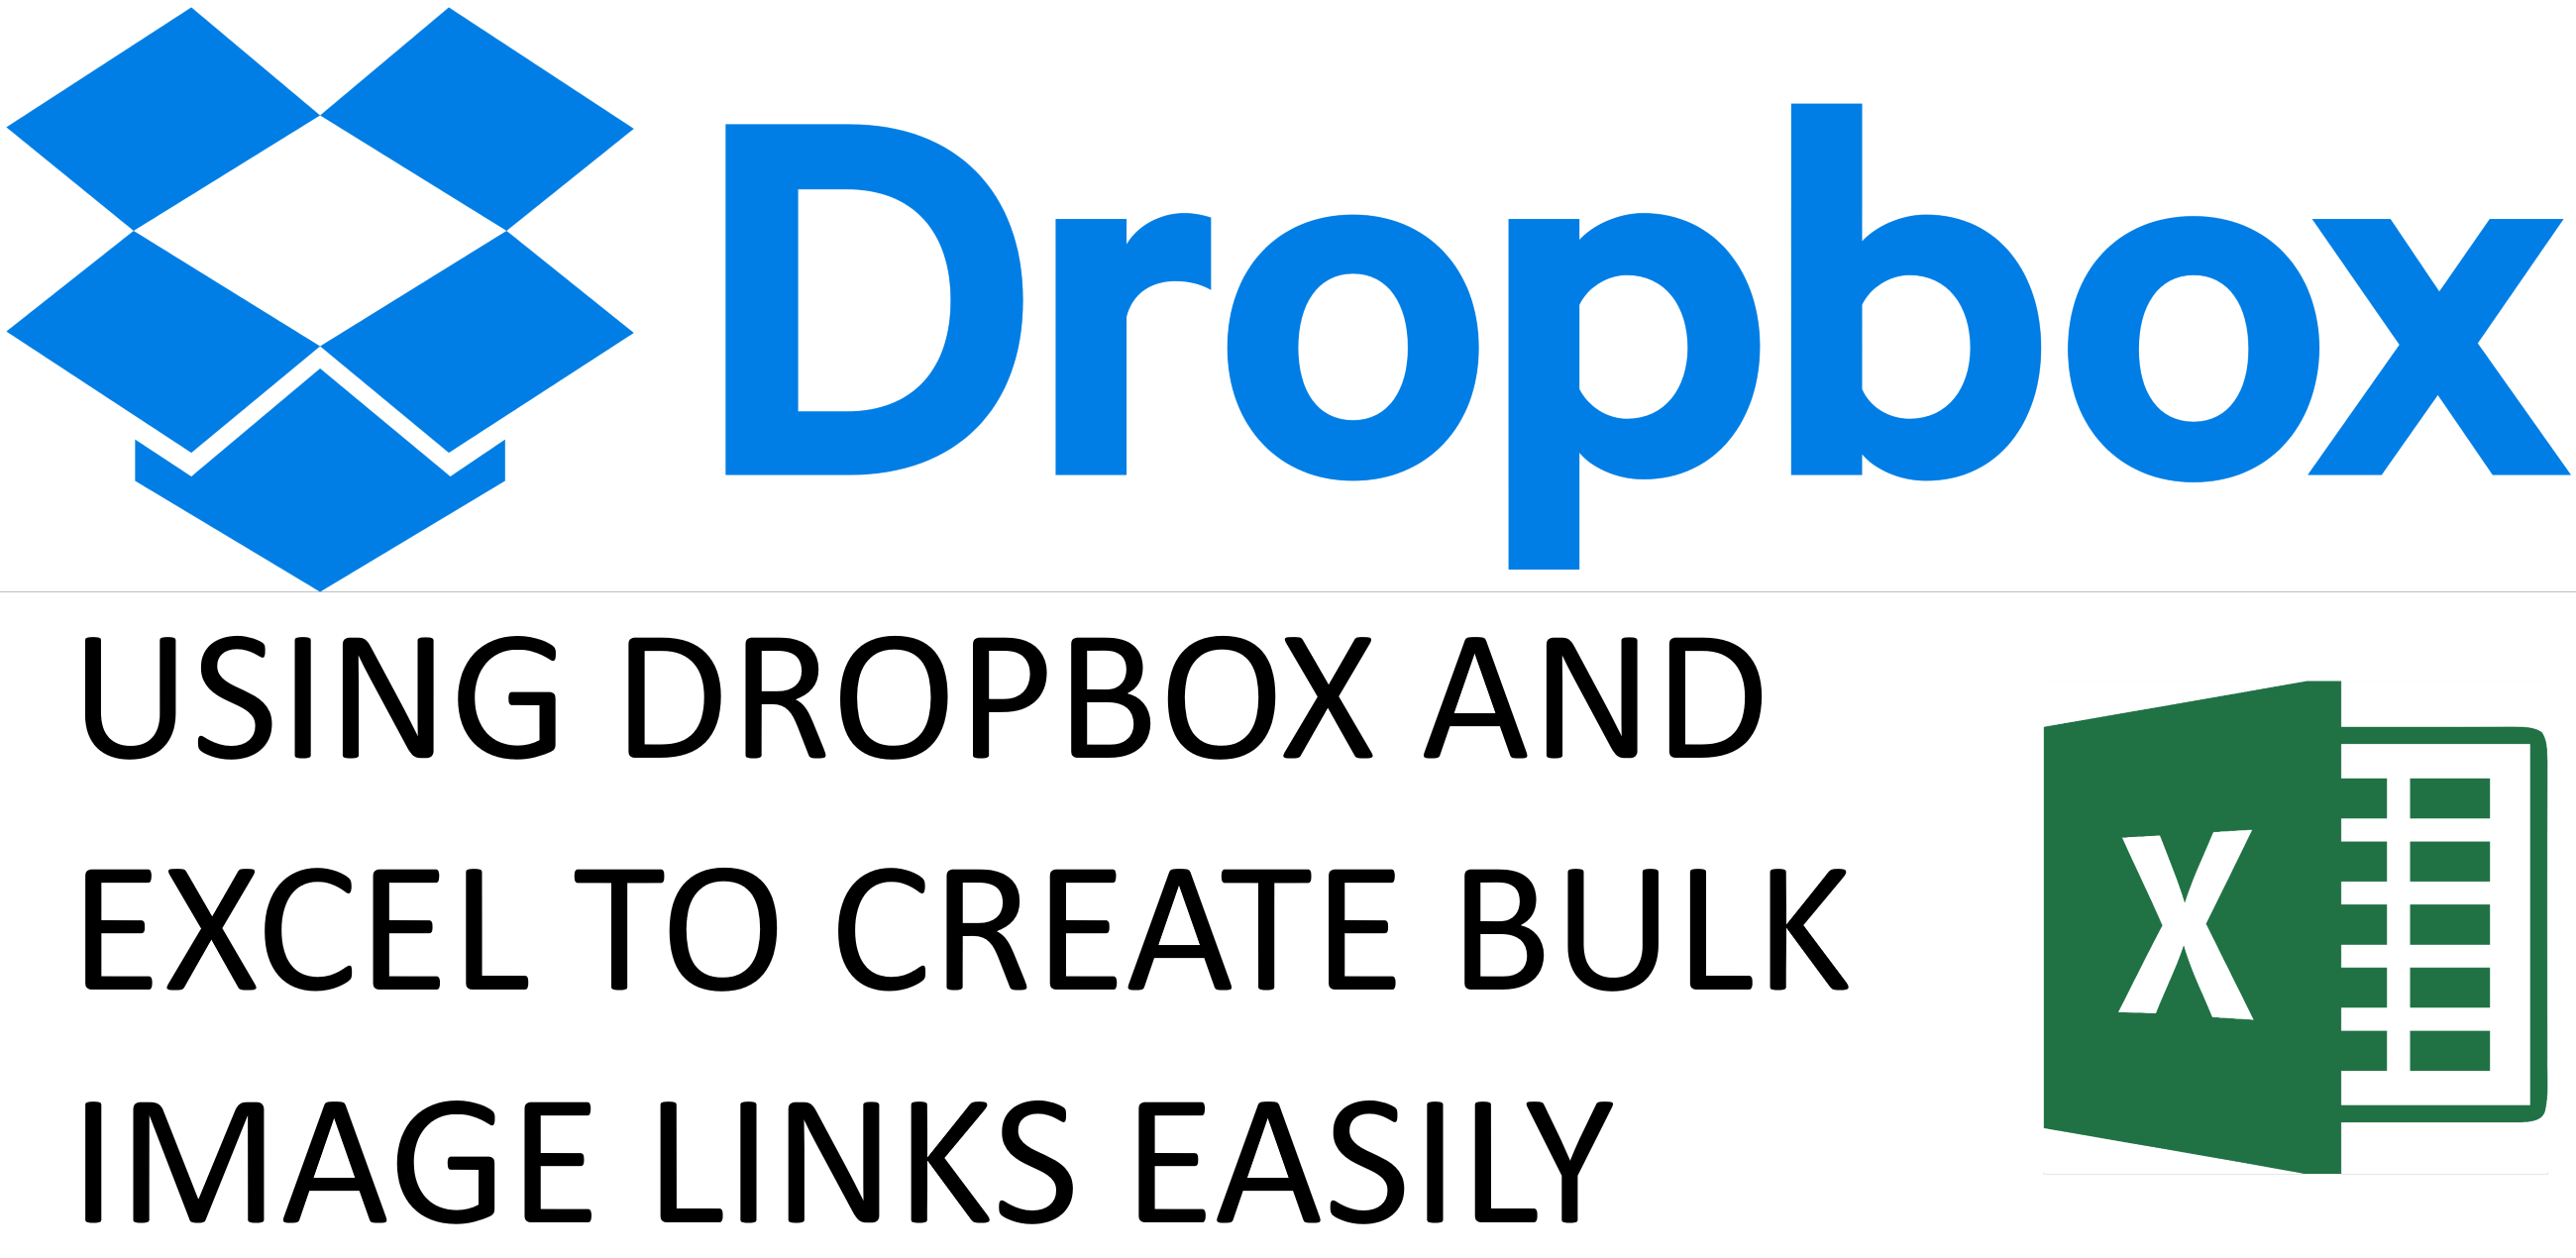 How to make Dropbox image links in bulk?